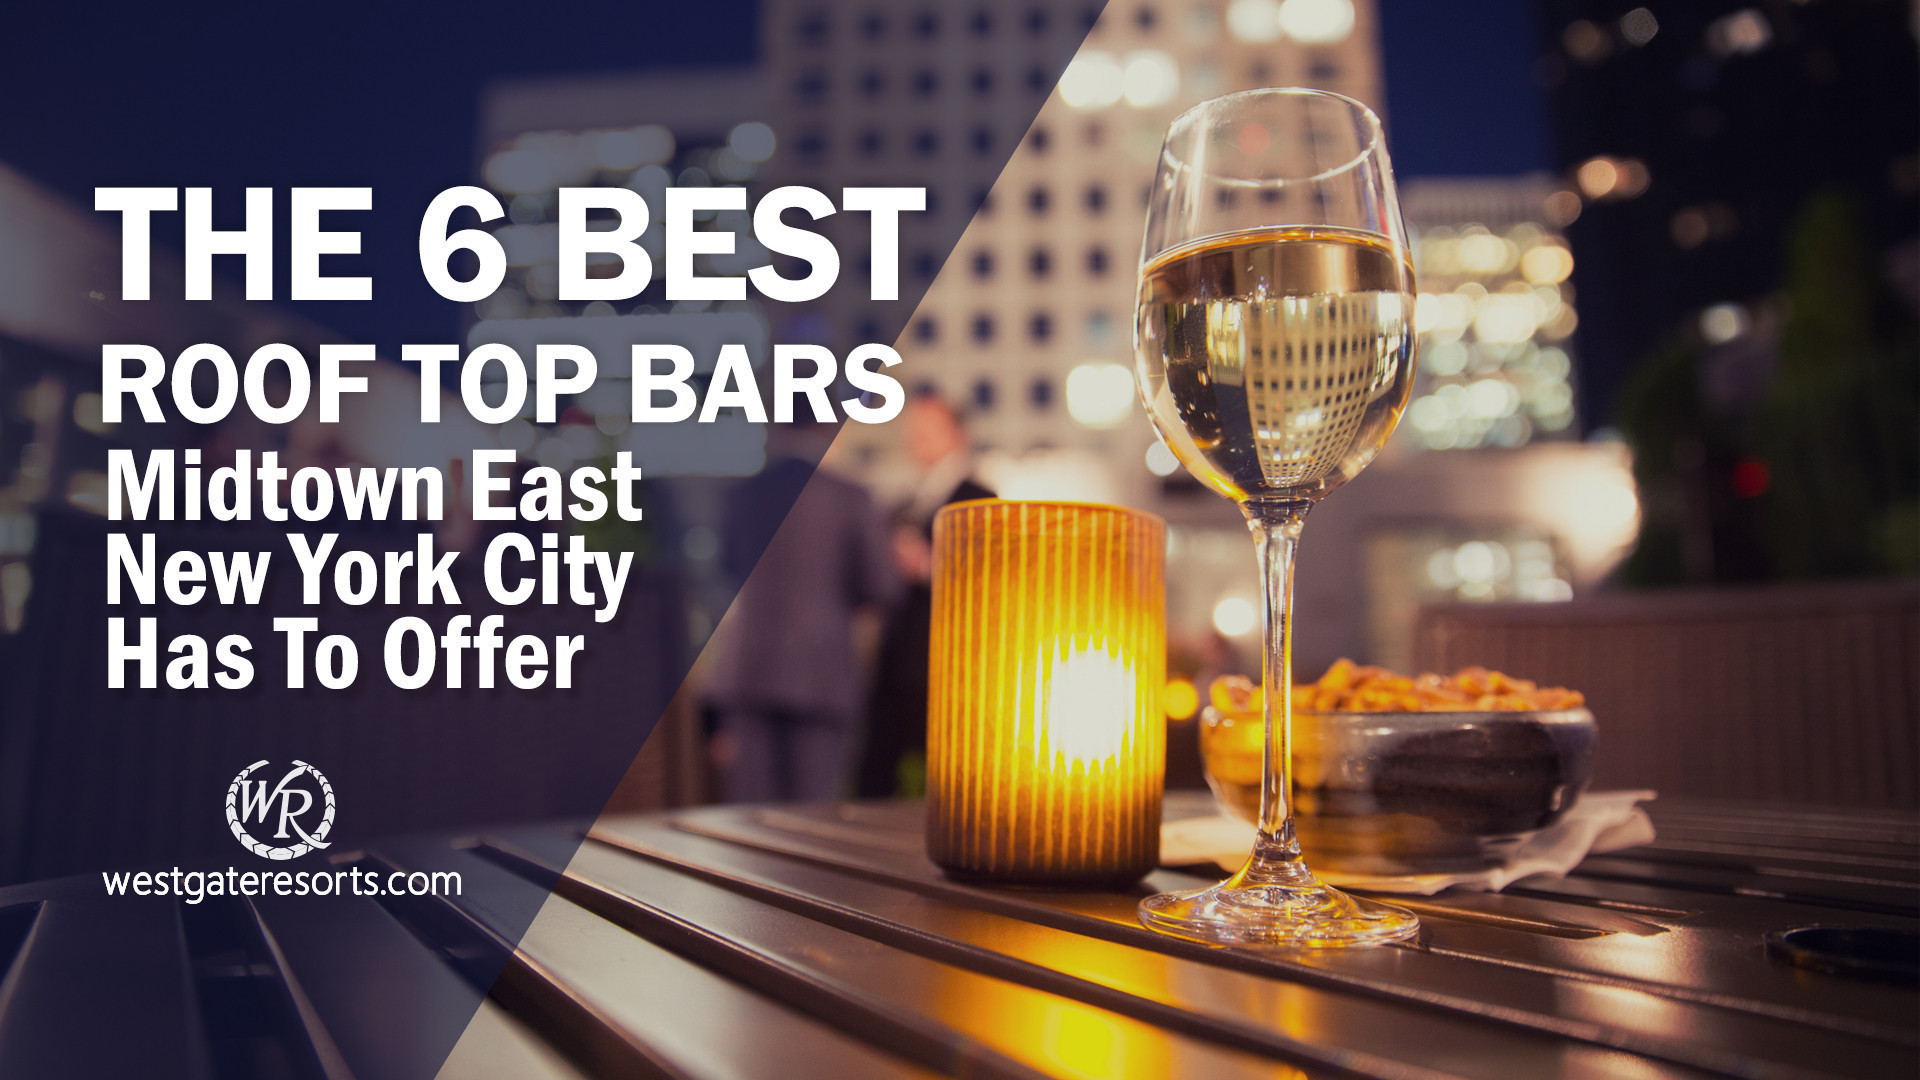 The 6 Best Rooftop Bars Midtown East New York City Has To Offer | Westgate New York City